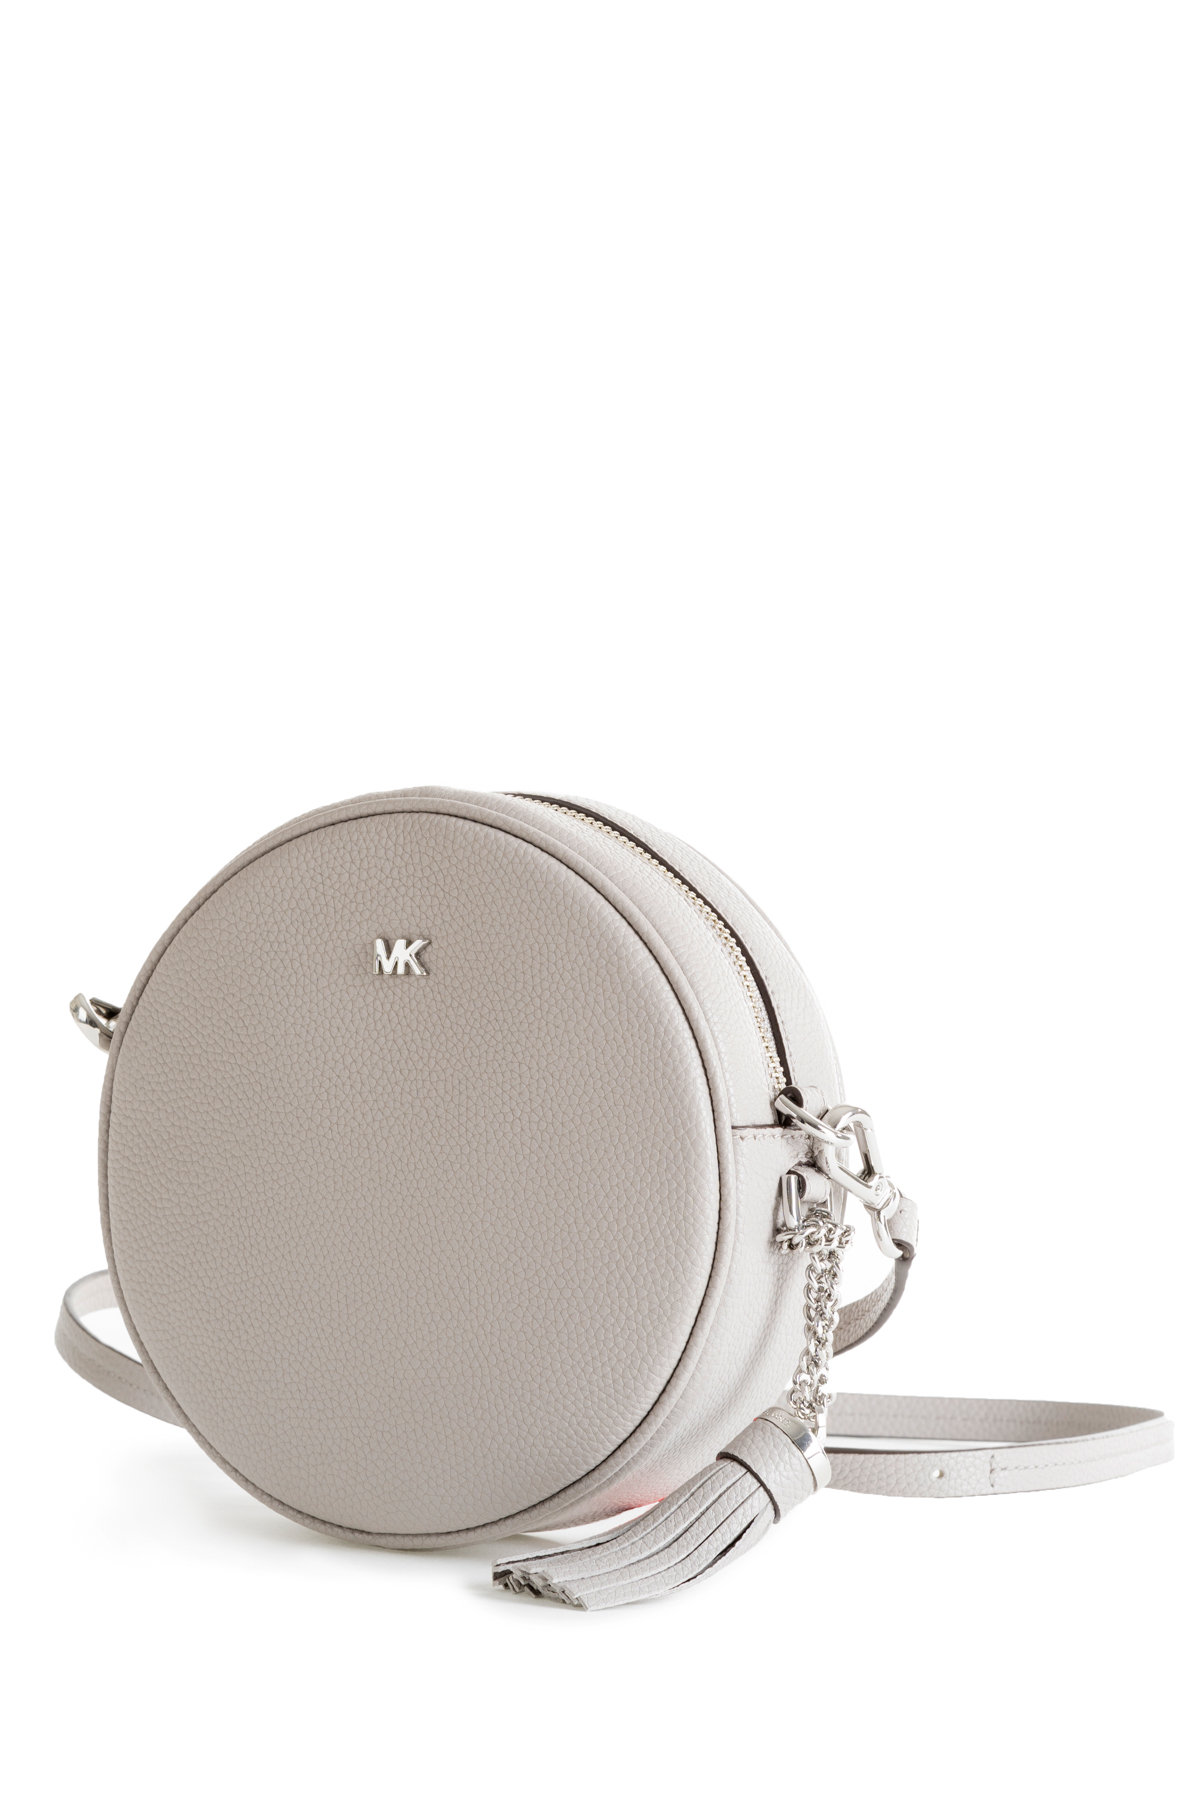 free shipping d8808 f5dde ROUND LEATHER BAG